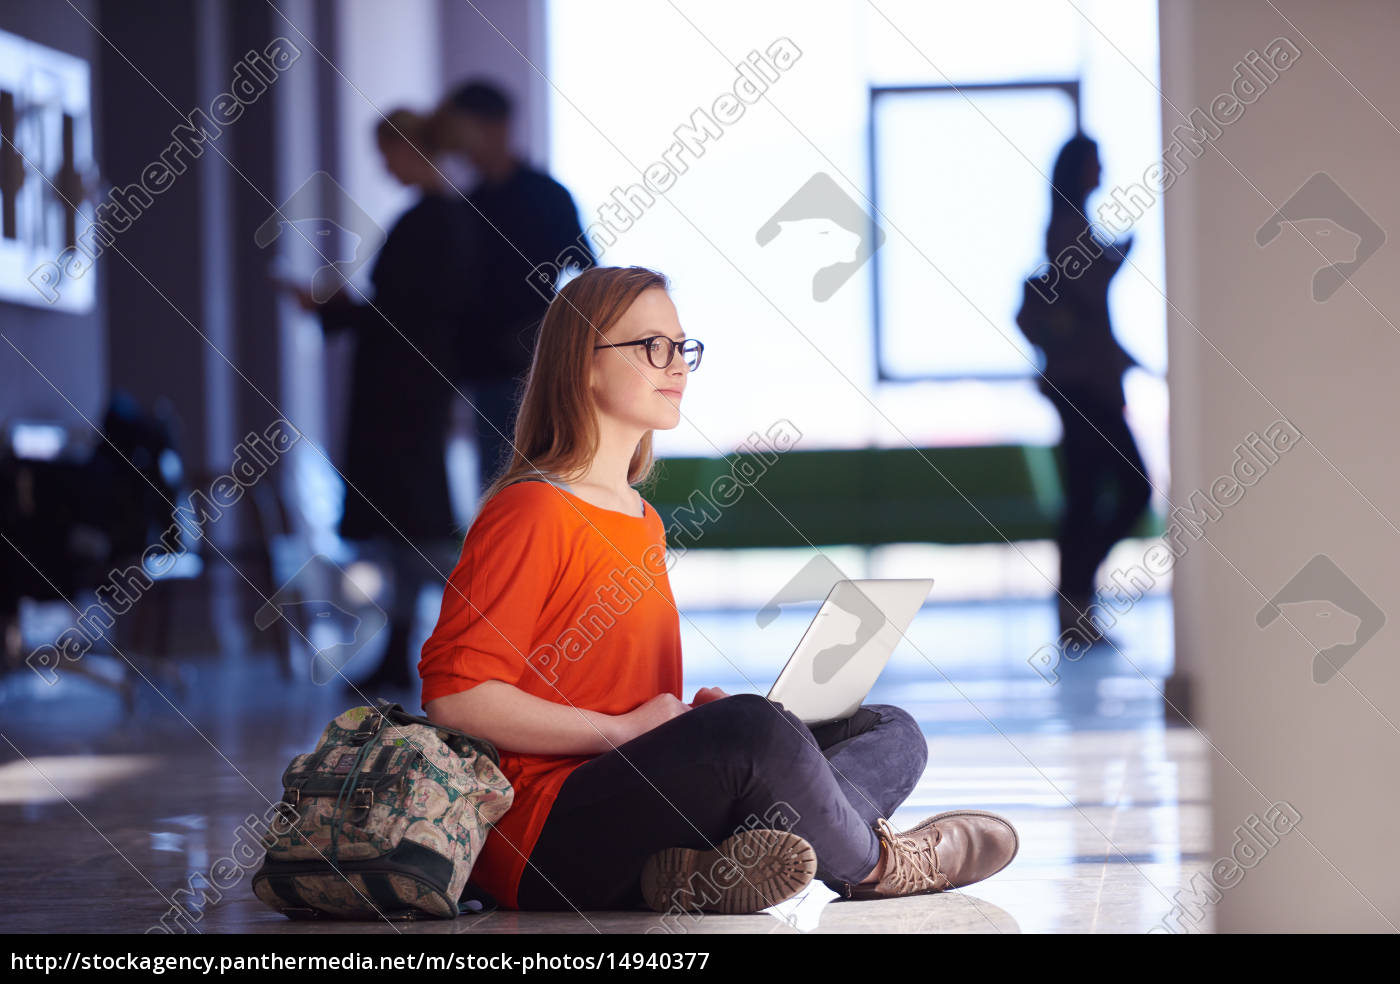 student, girl, with, laptop, computer - 14940377